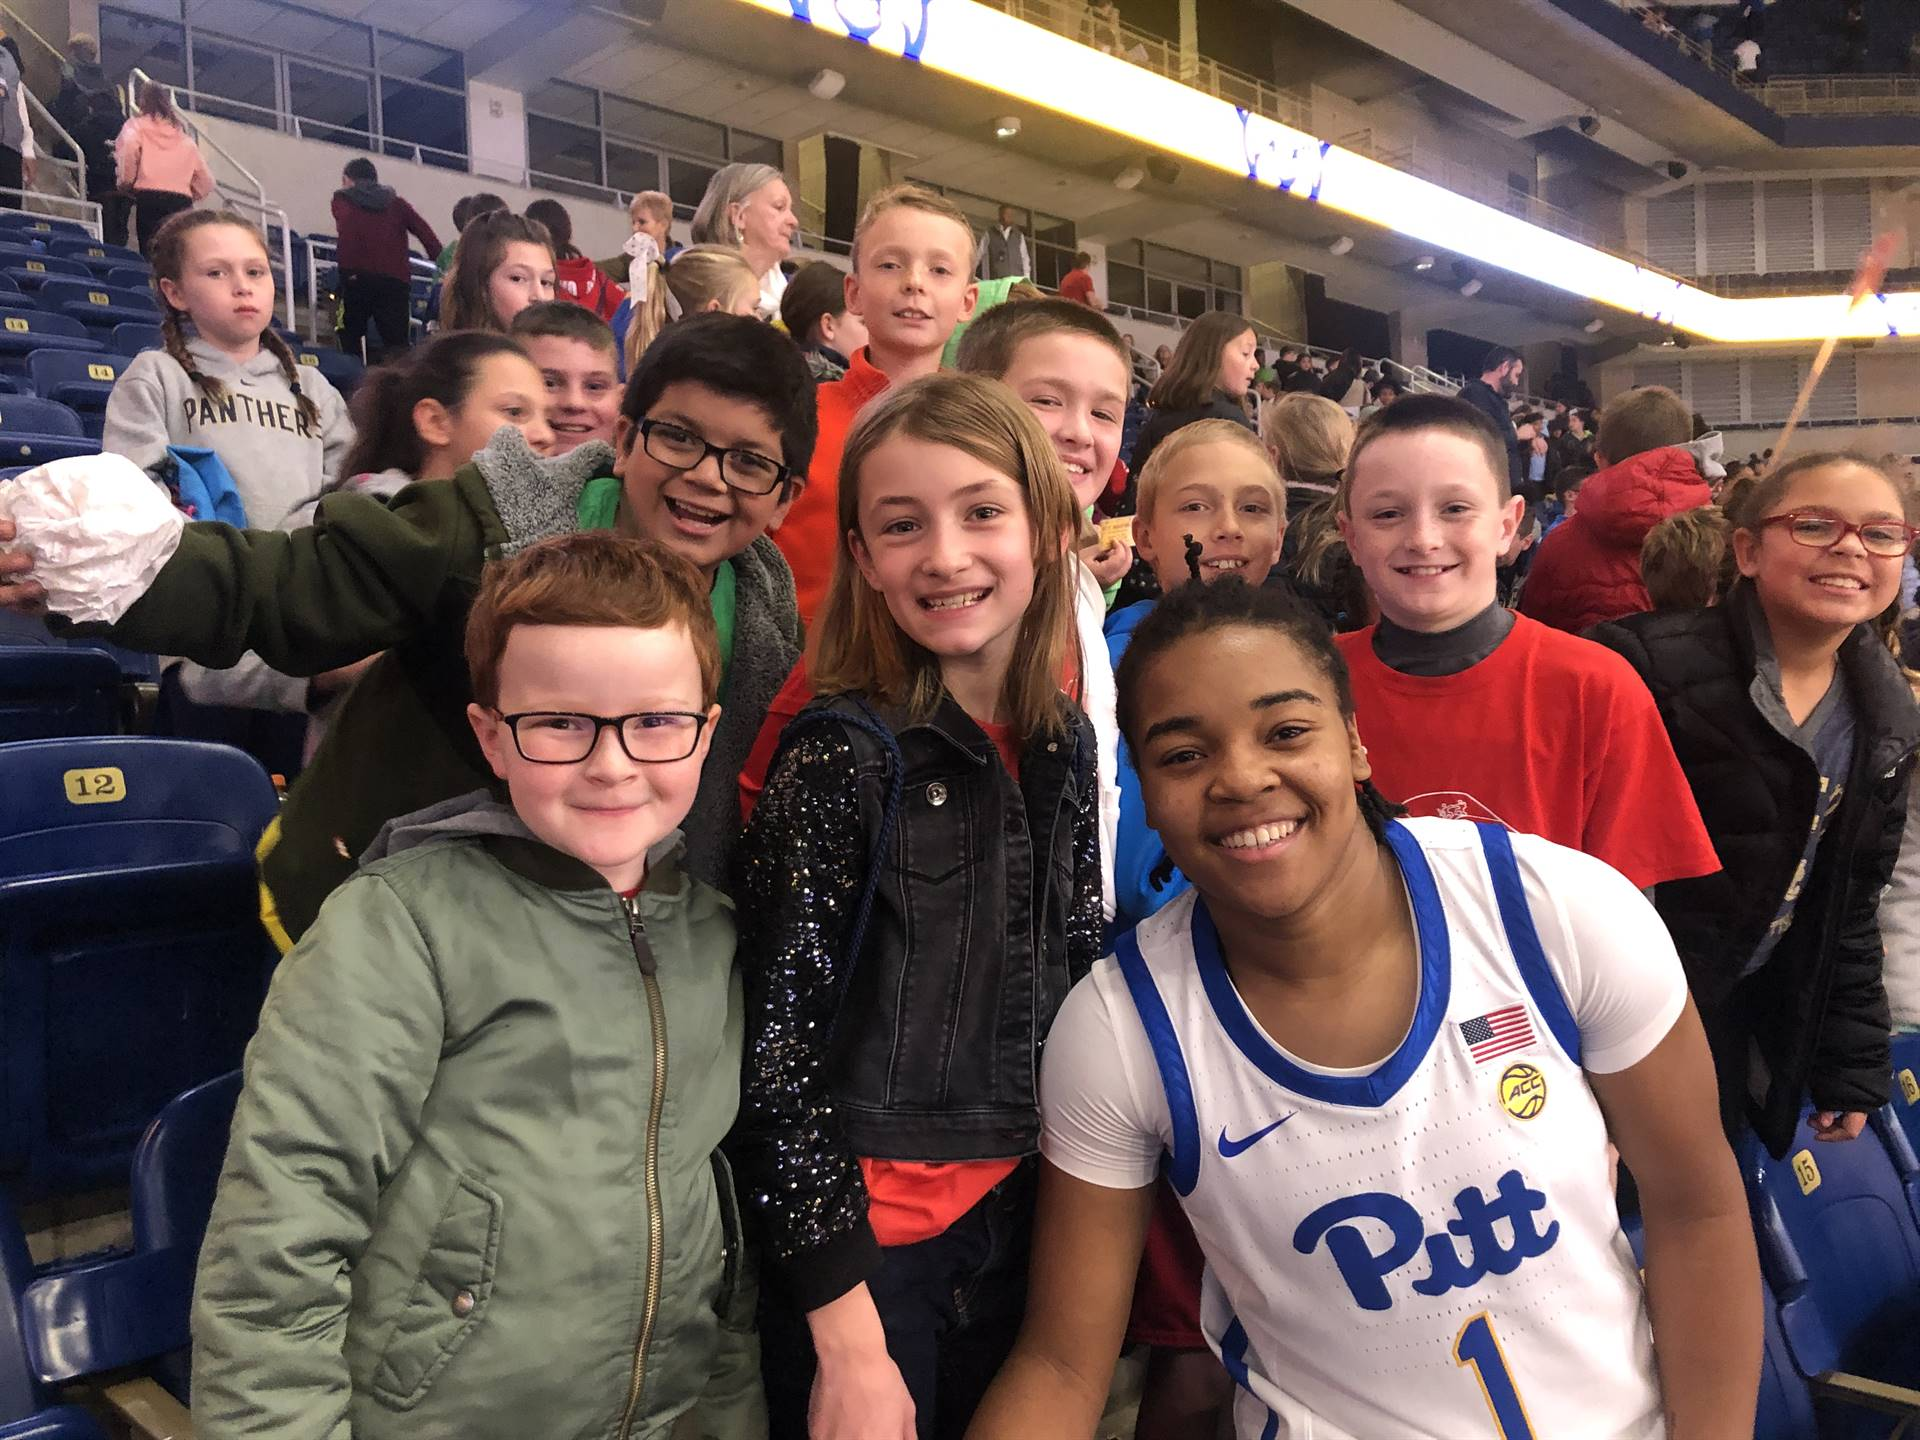 Pitt B-ball Player with SAES students